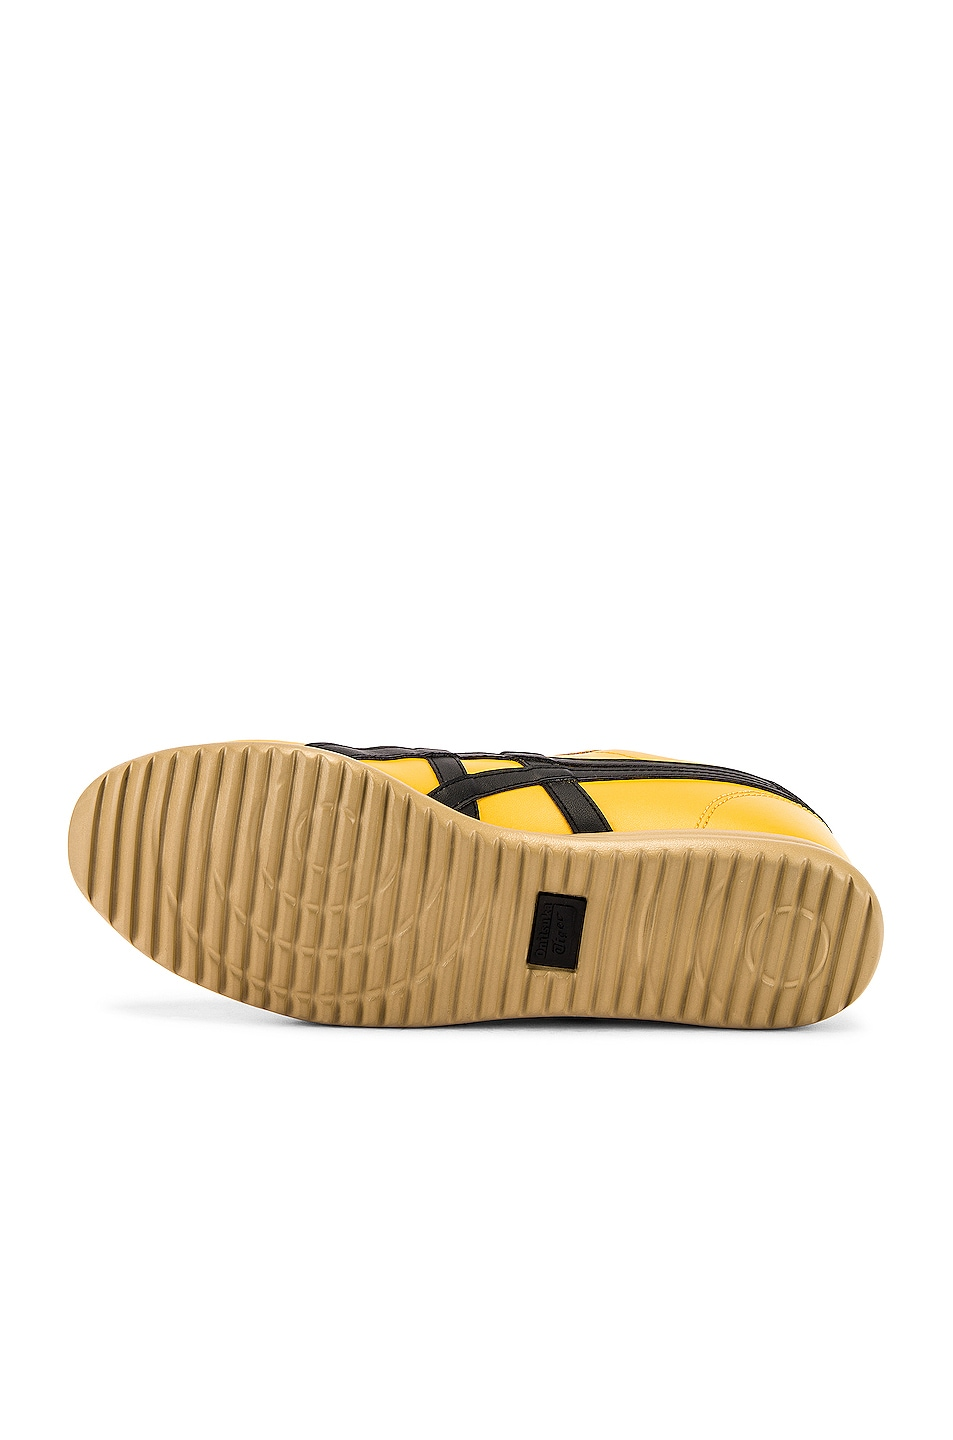 Image 6 of Onitsuka Tiger Tai-Chi-Reb in Tiger Yellow & Black